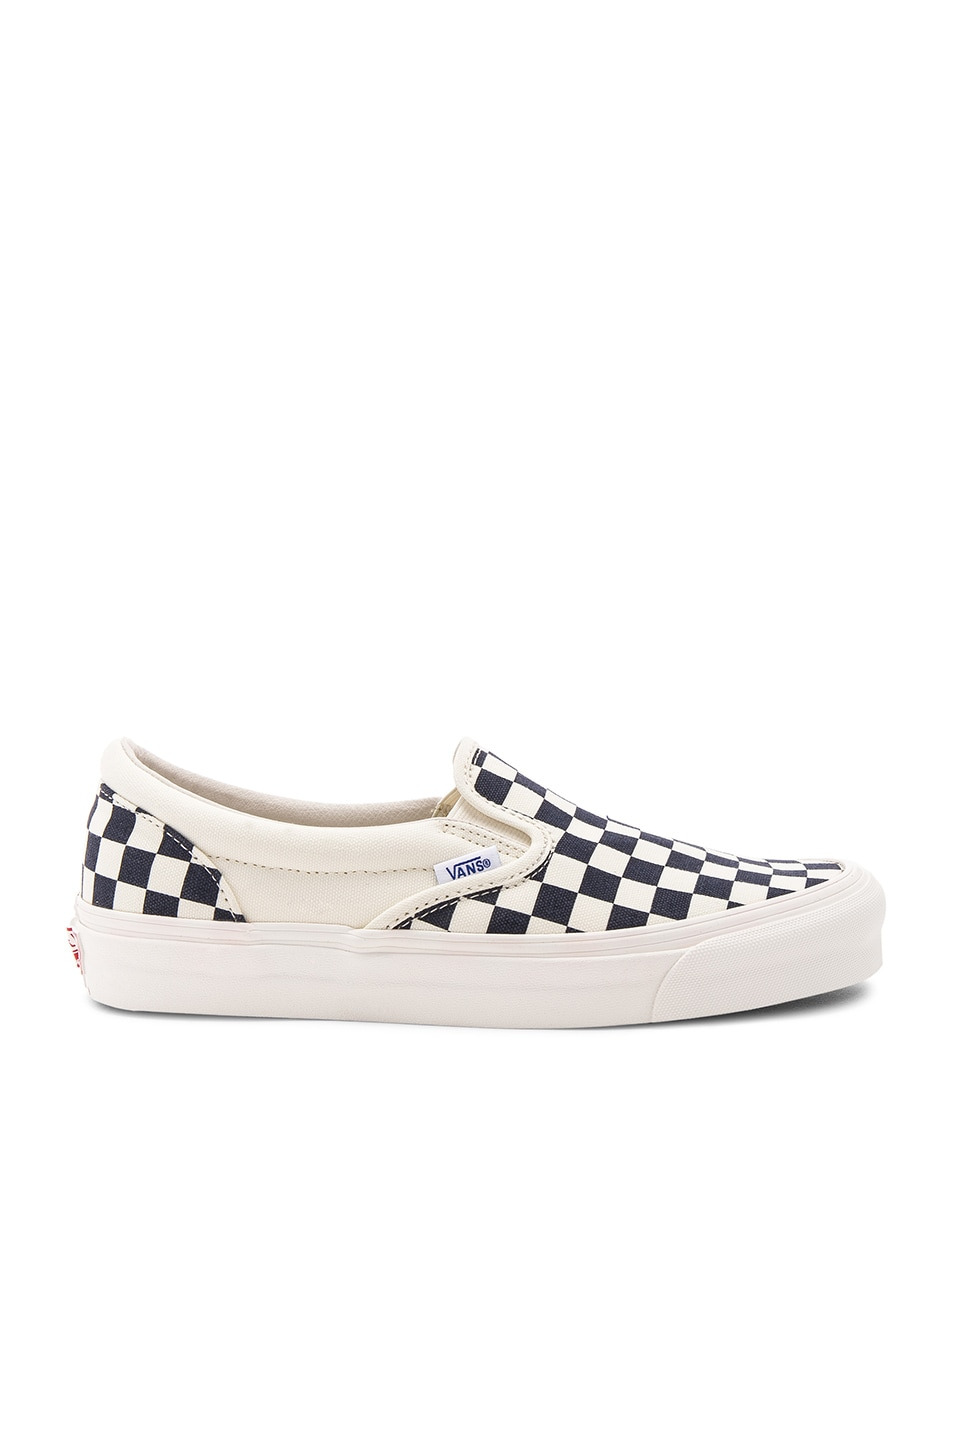 a5cafabcf9c77a Image 1 of Vans Vault OG Classic Canvas Checkerboard Slip On LX in White    Navy